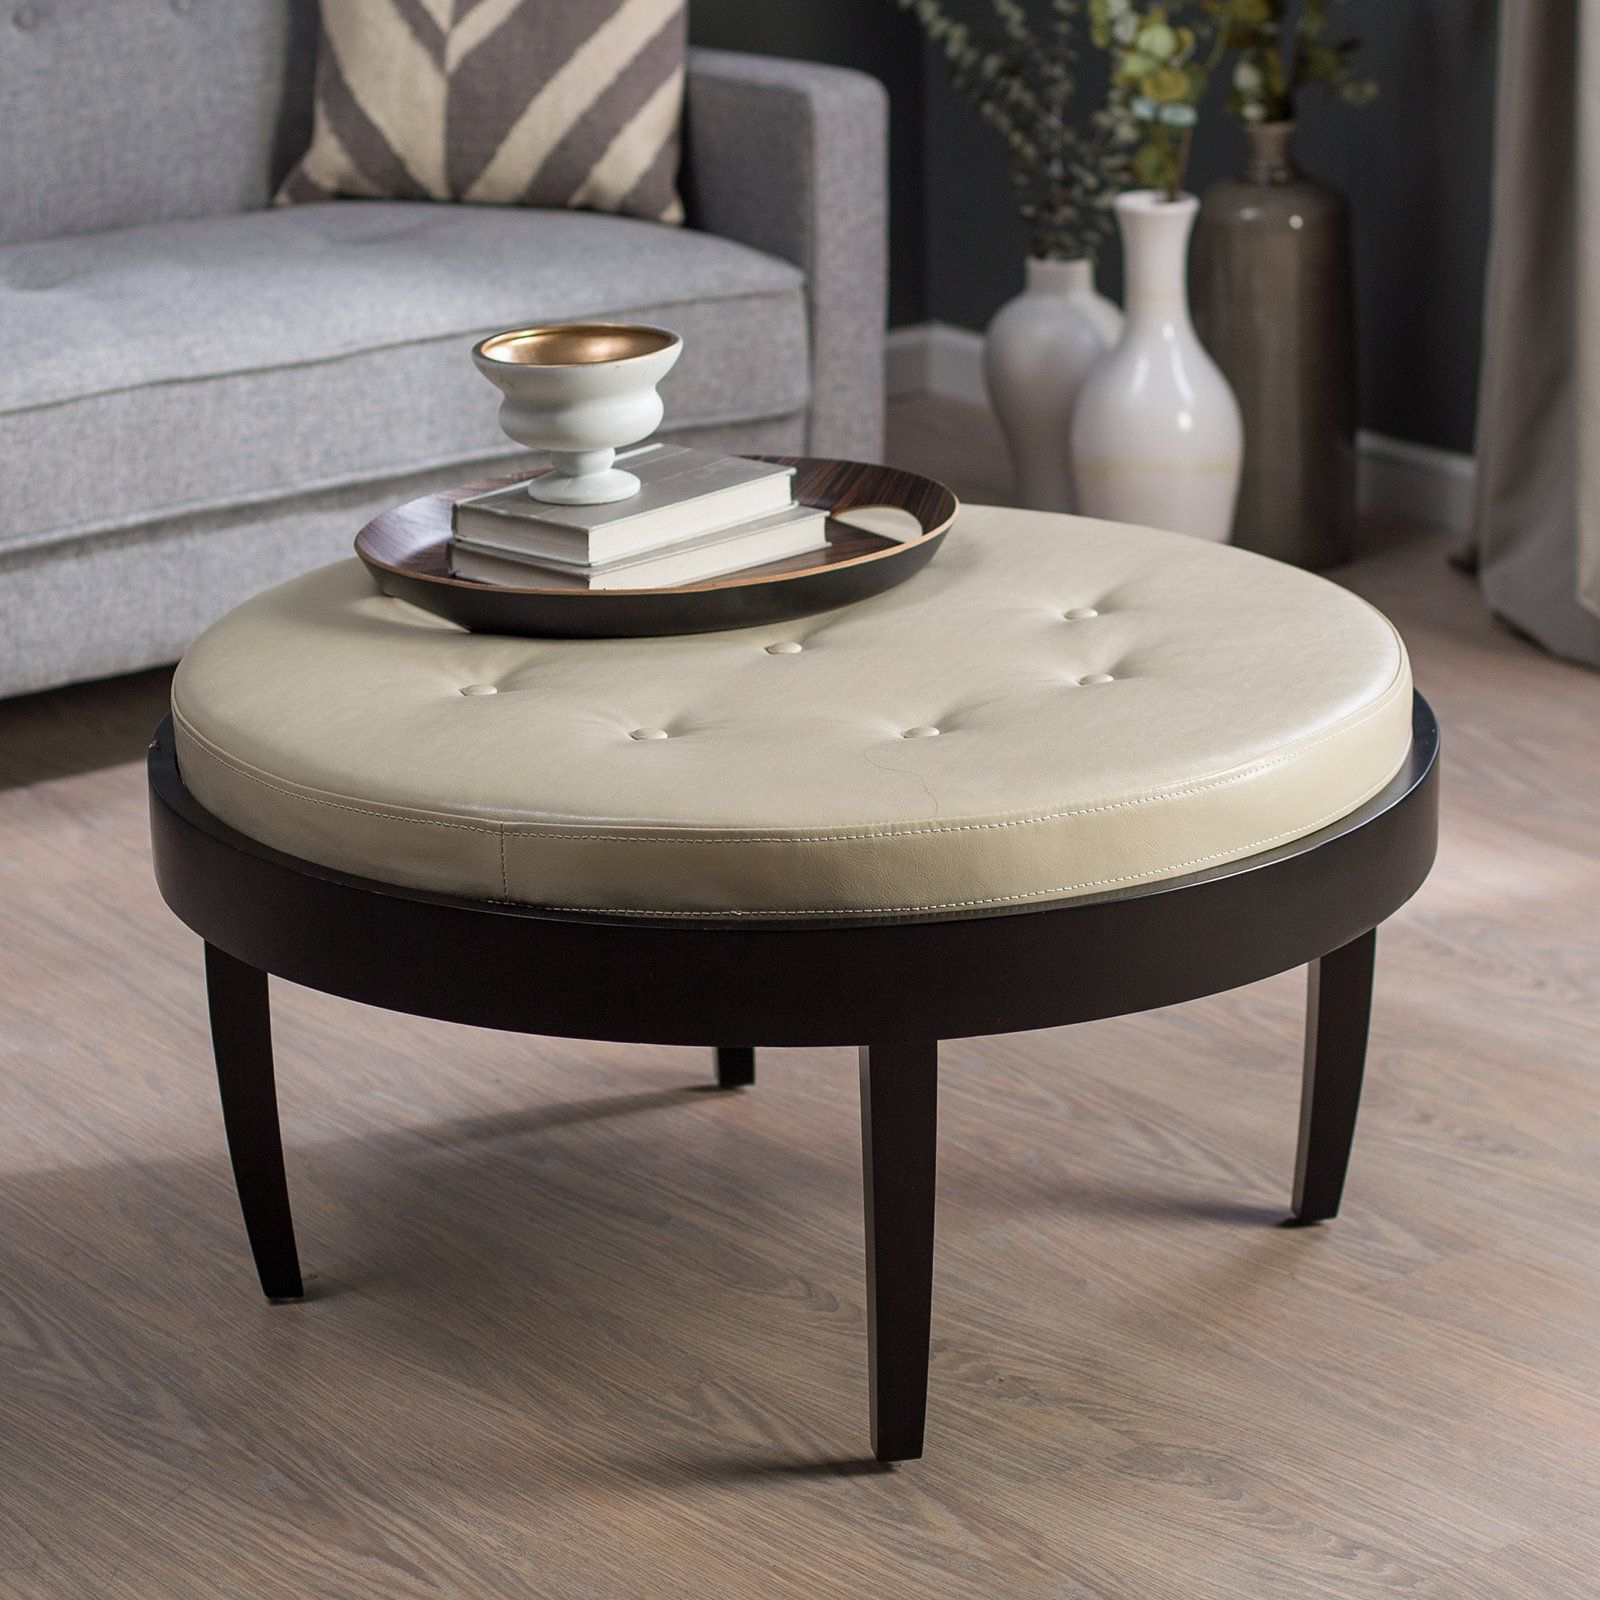 2018 Moraga Barrel Coffee Tables Pertaining To Have To Have It (View 8 of 20)